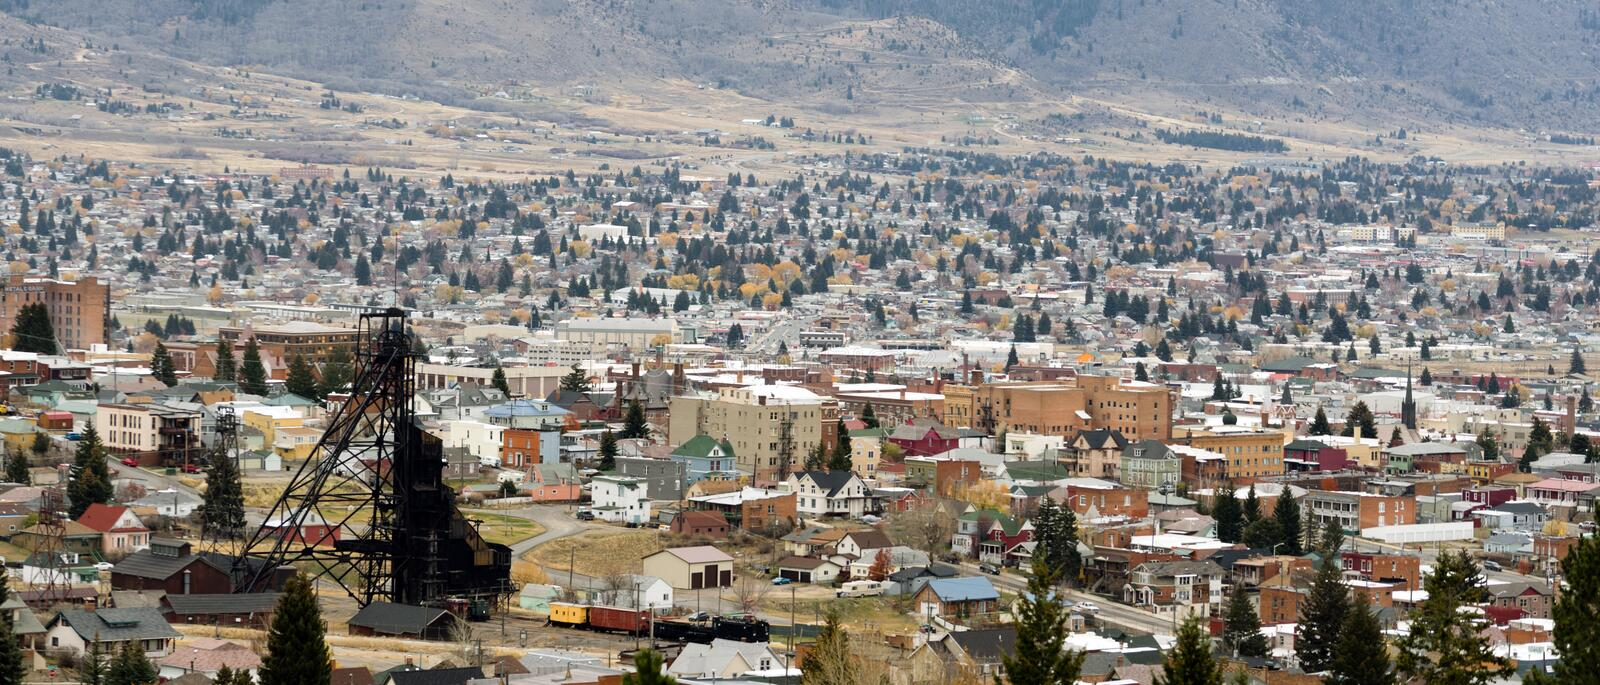 High Angle Overlook Butte Montana Downtown USA United States. Downtown Butte Montana with winter setting in stock image